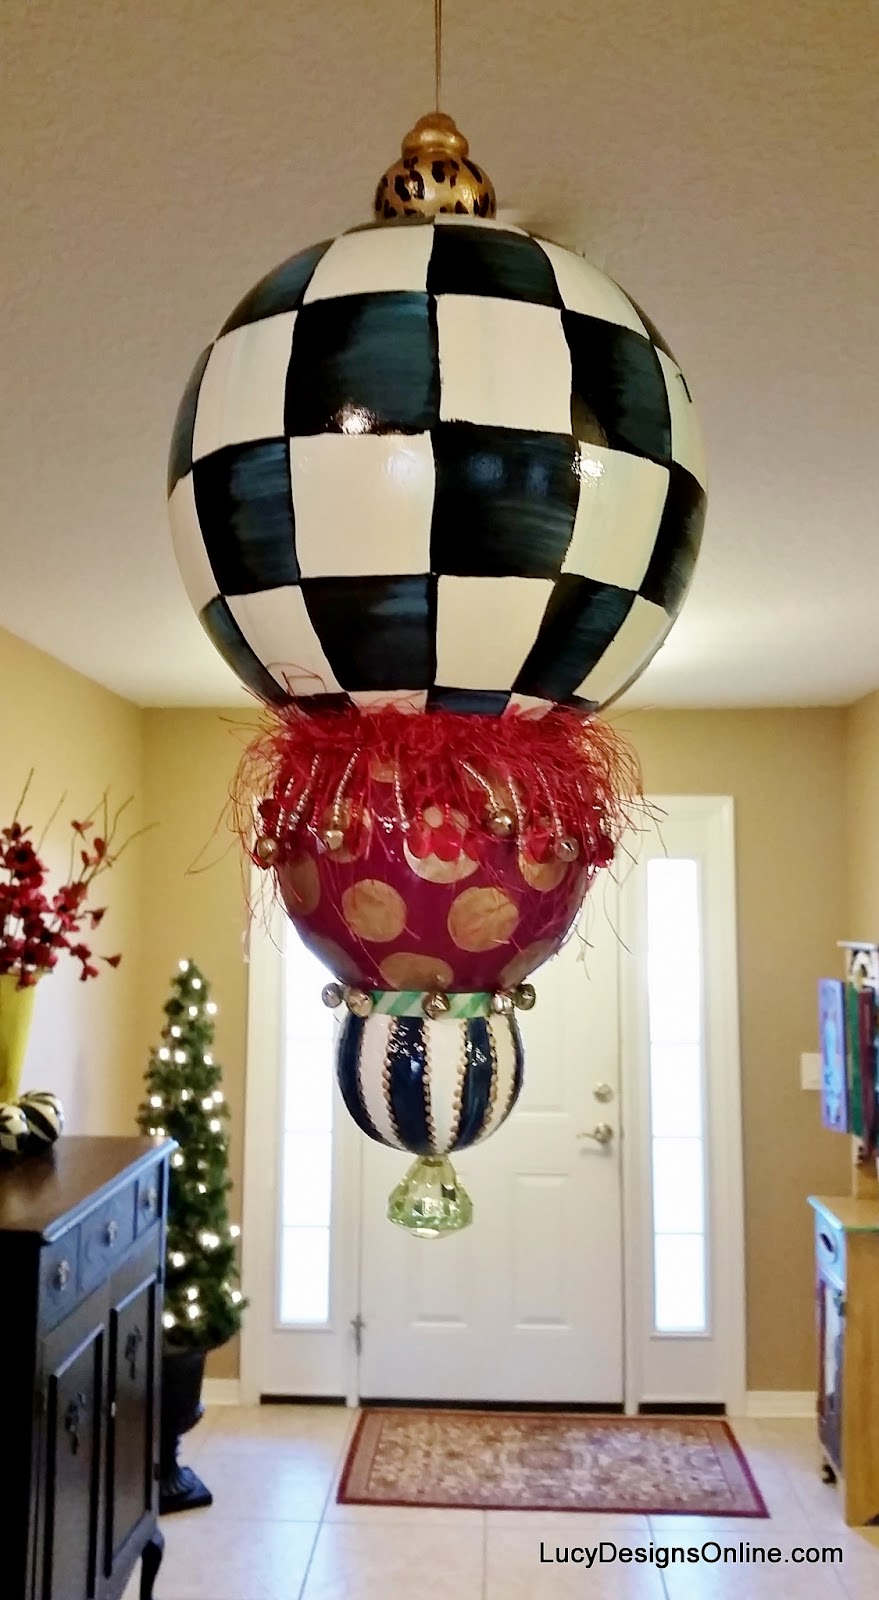 giant colorful Christmas kissing ball ornament